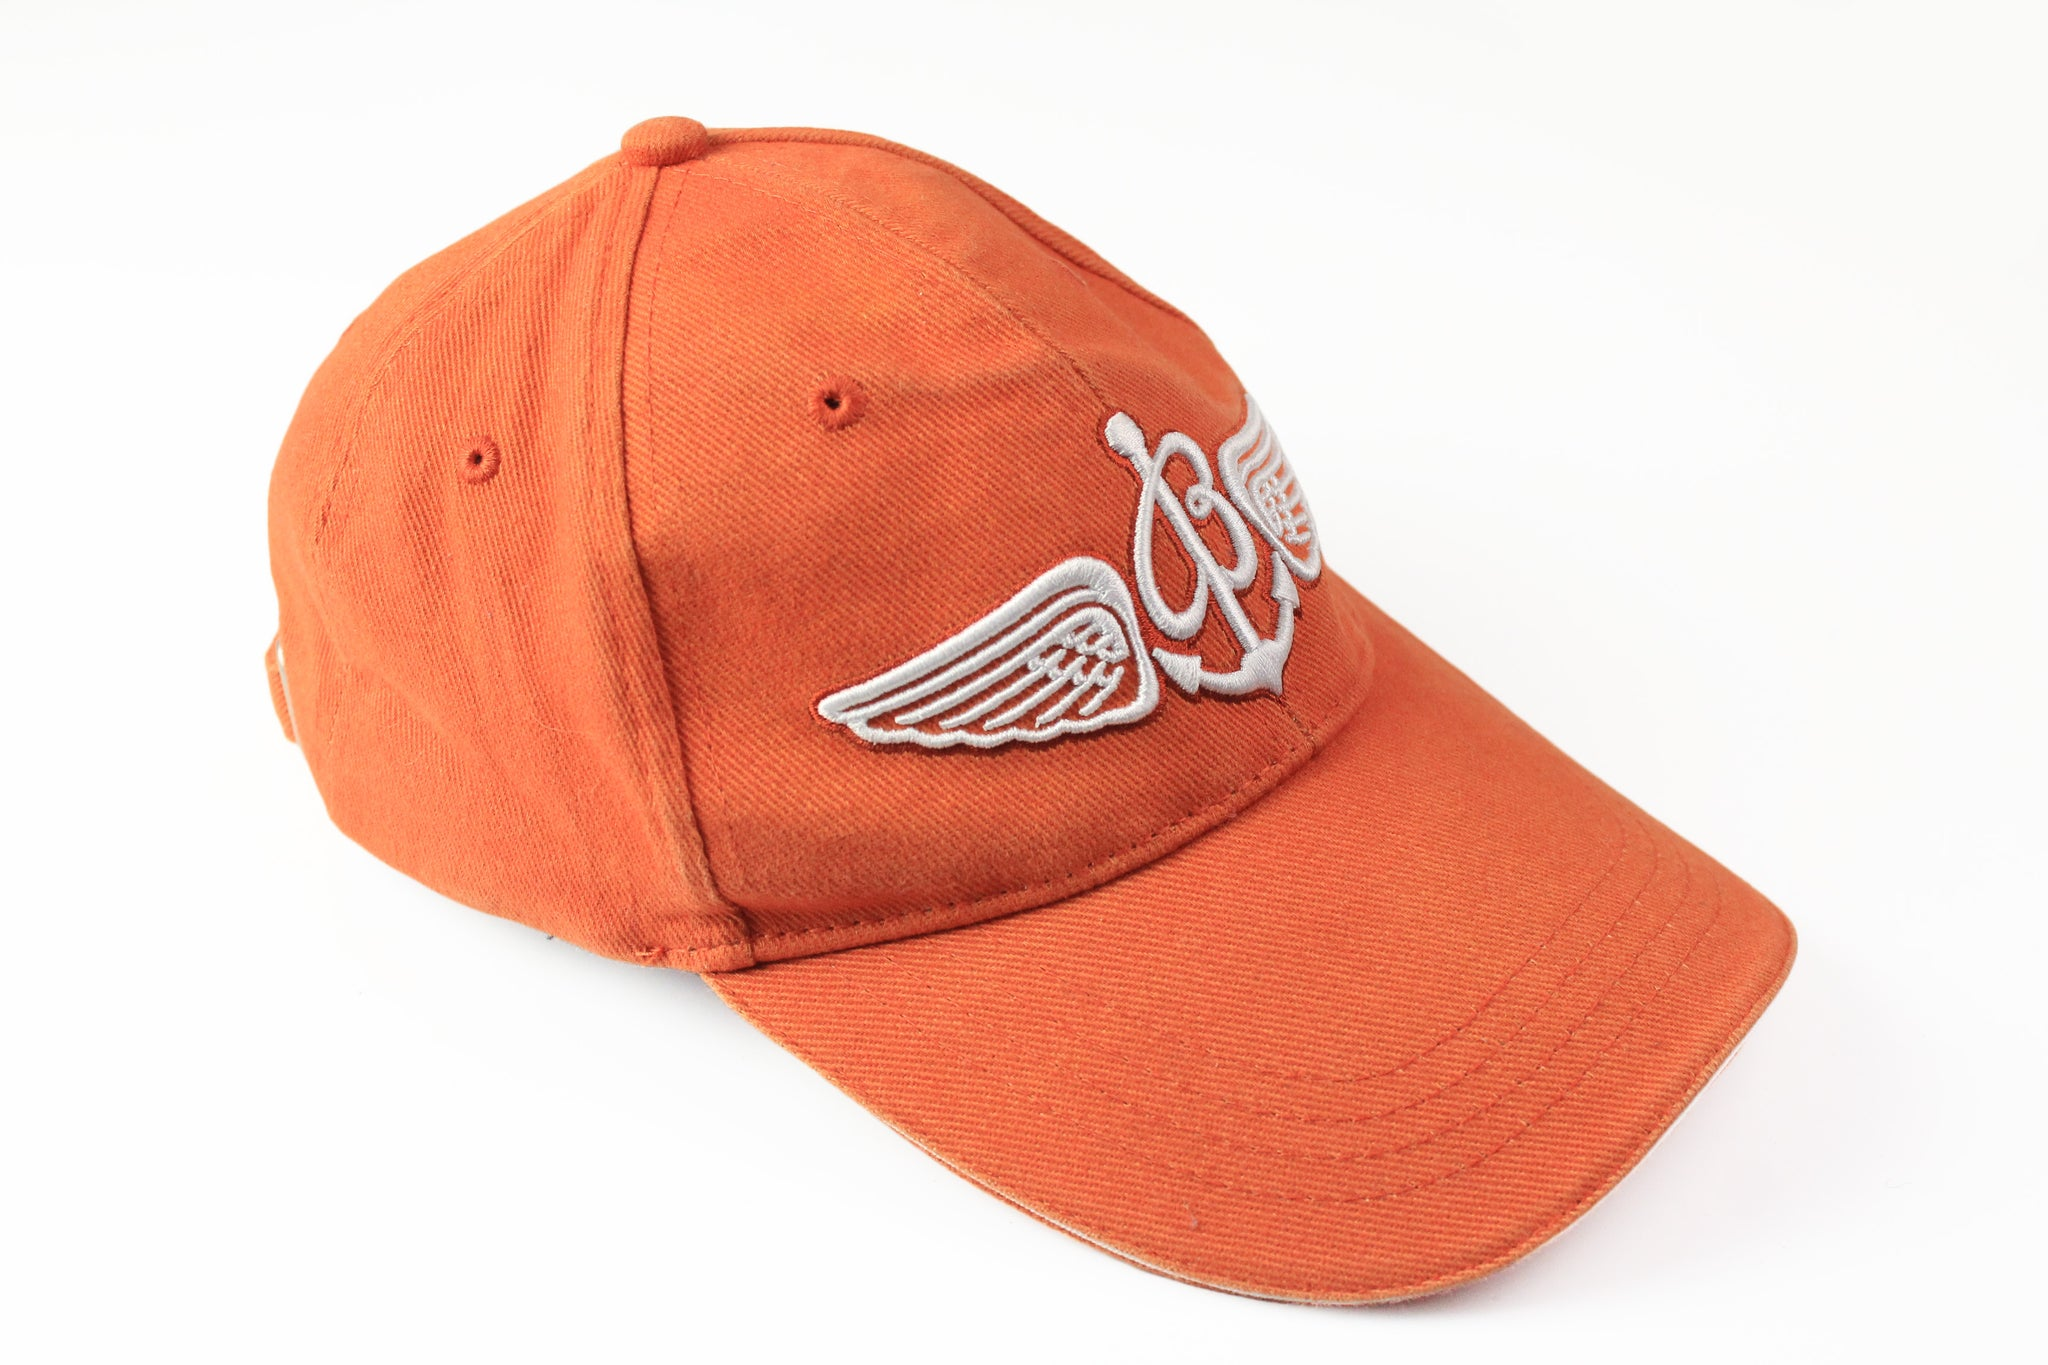 Breitling Cap orange big logo cotton heavy classic watch hat